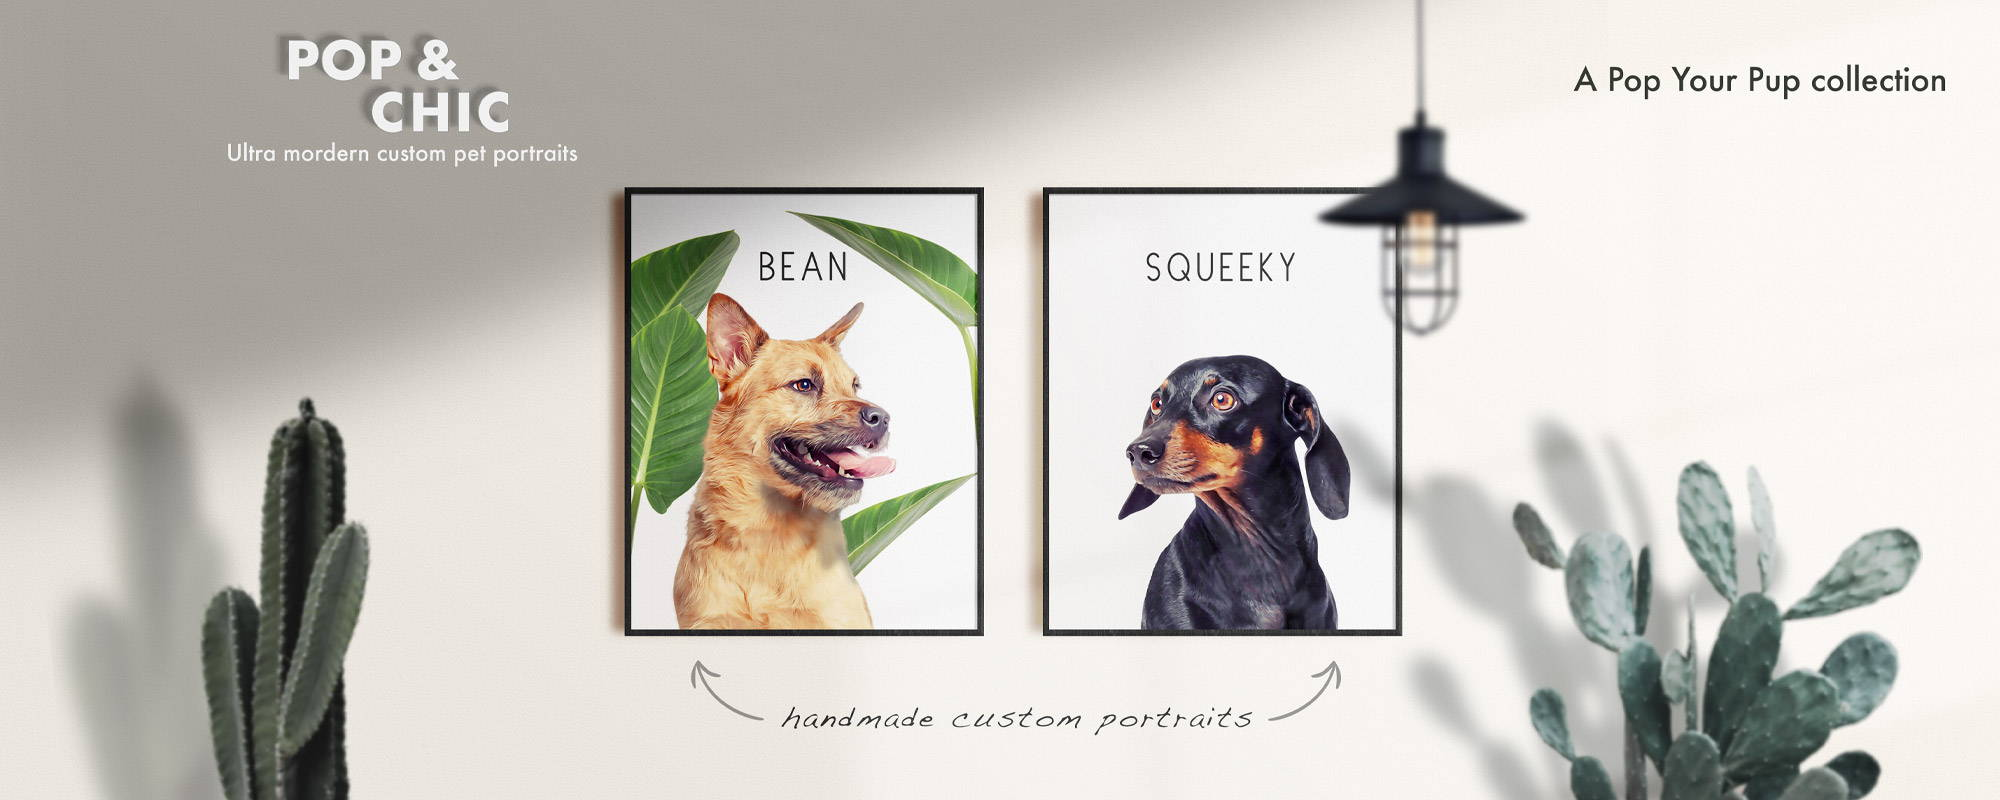 Pop Chic Banner image 2 modern personalized pet portraits